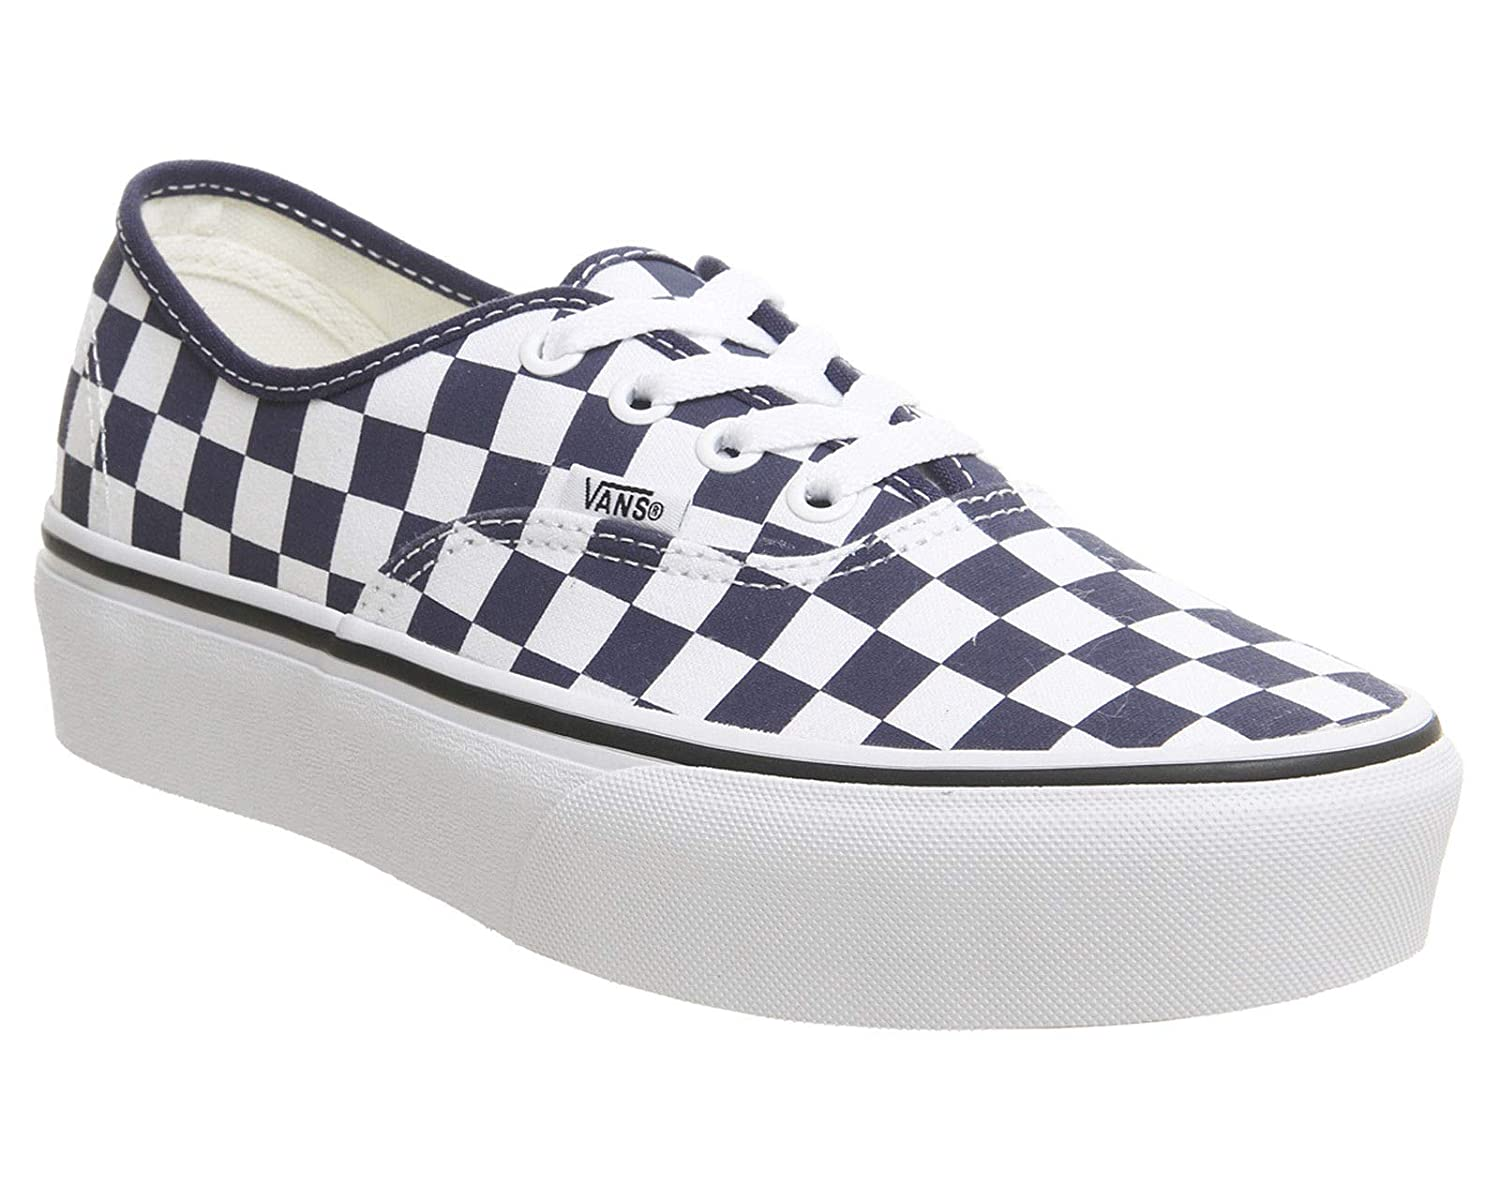 8b3ef05979 Vans - Trainers - UA Authentic Platform (Checkerboard) Blue White   Amazon.co.uk  Shoes   Bags